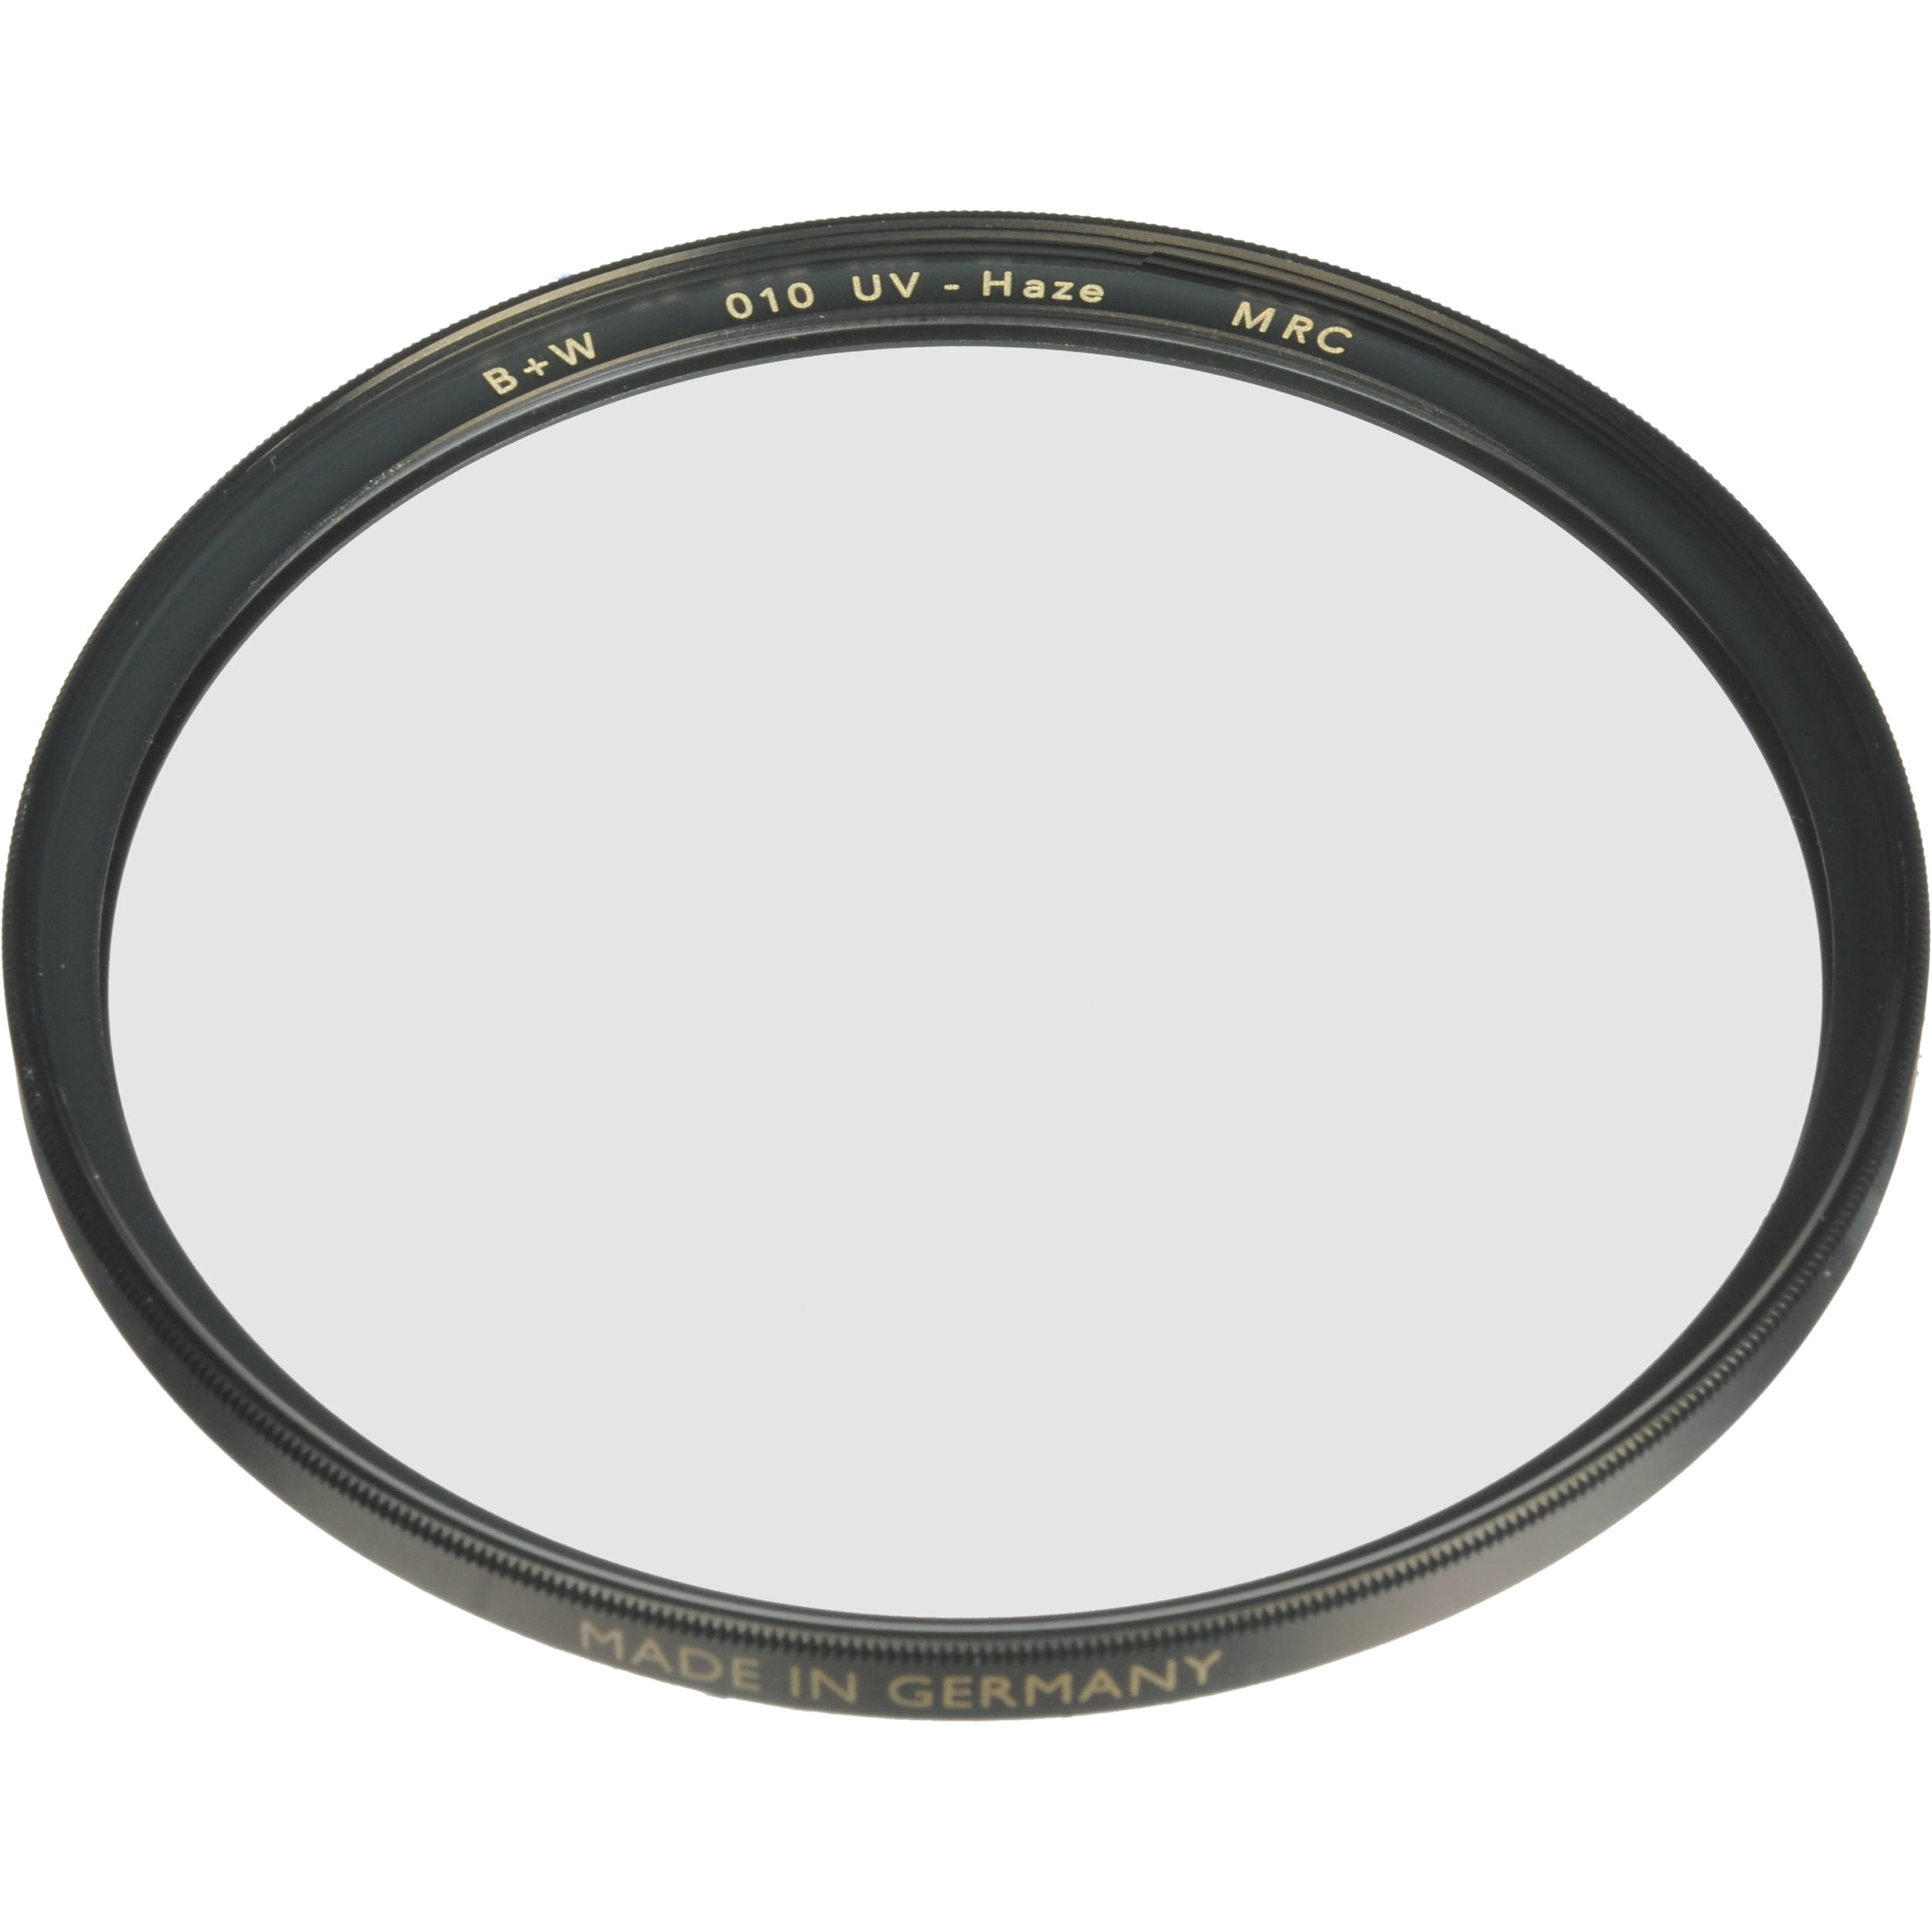 B+W UV-Filter F-Pro MRC 010M SH 55mm